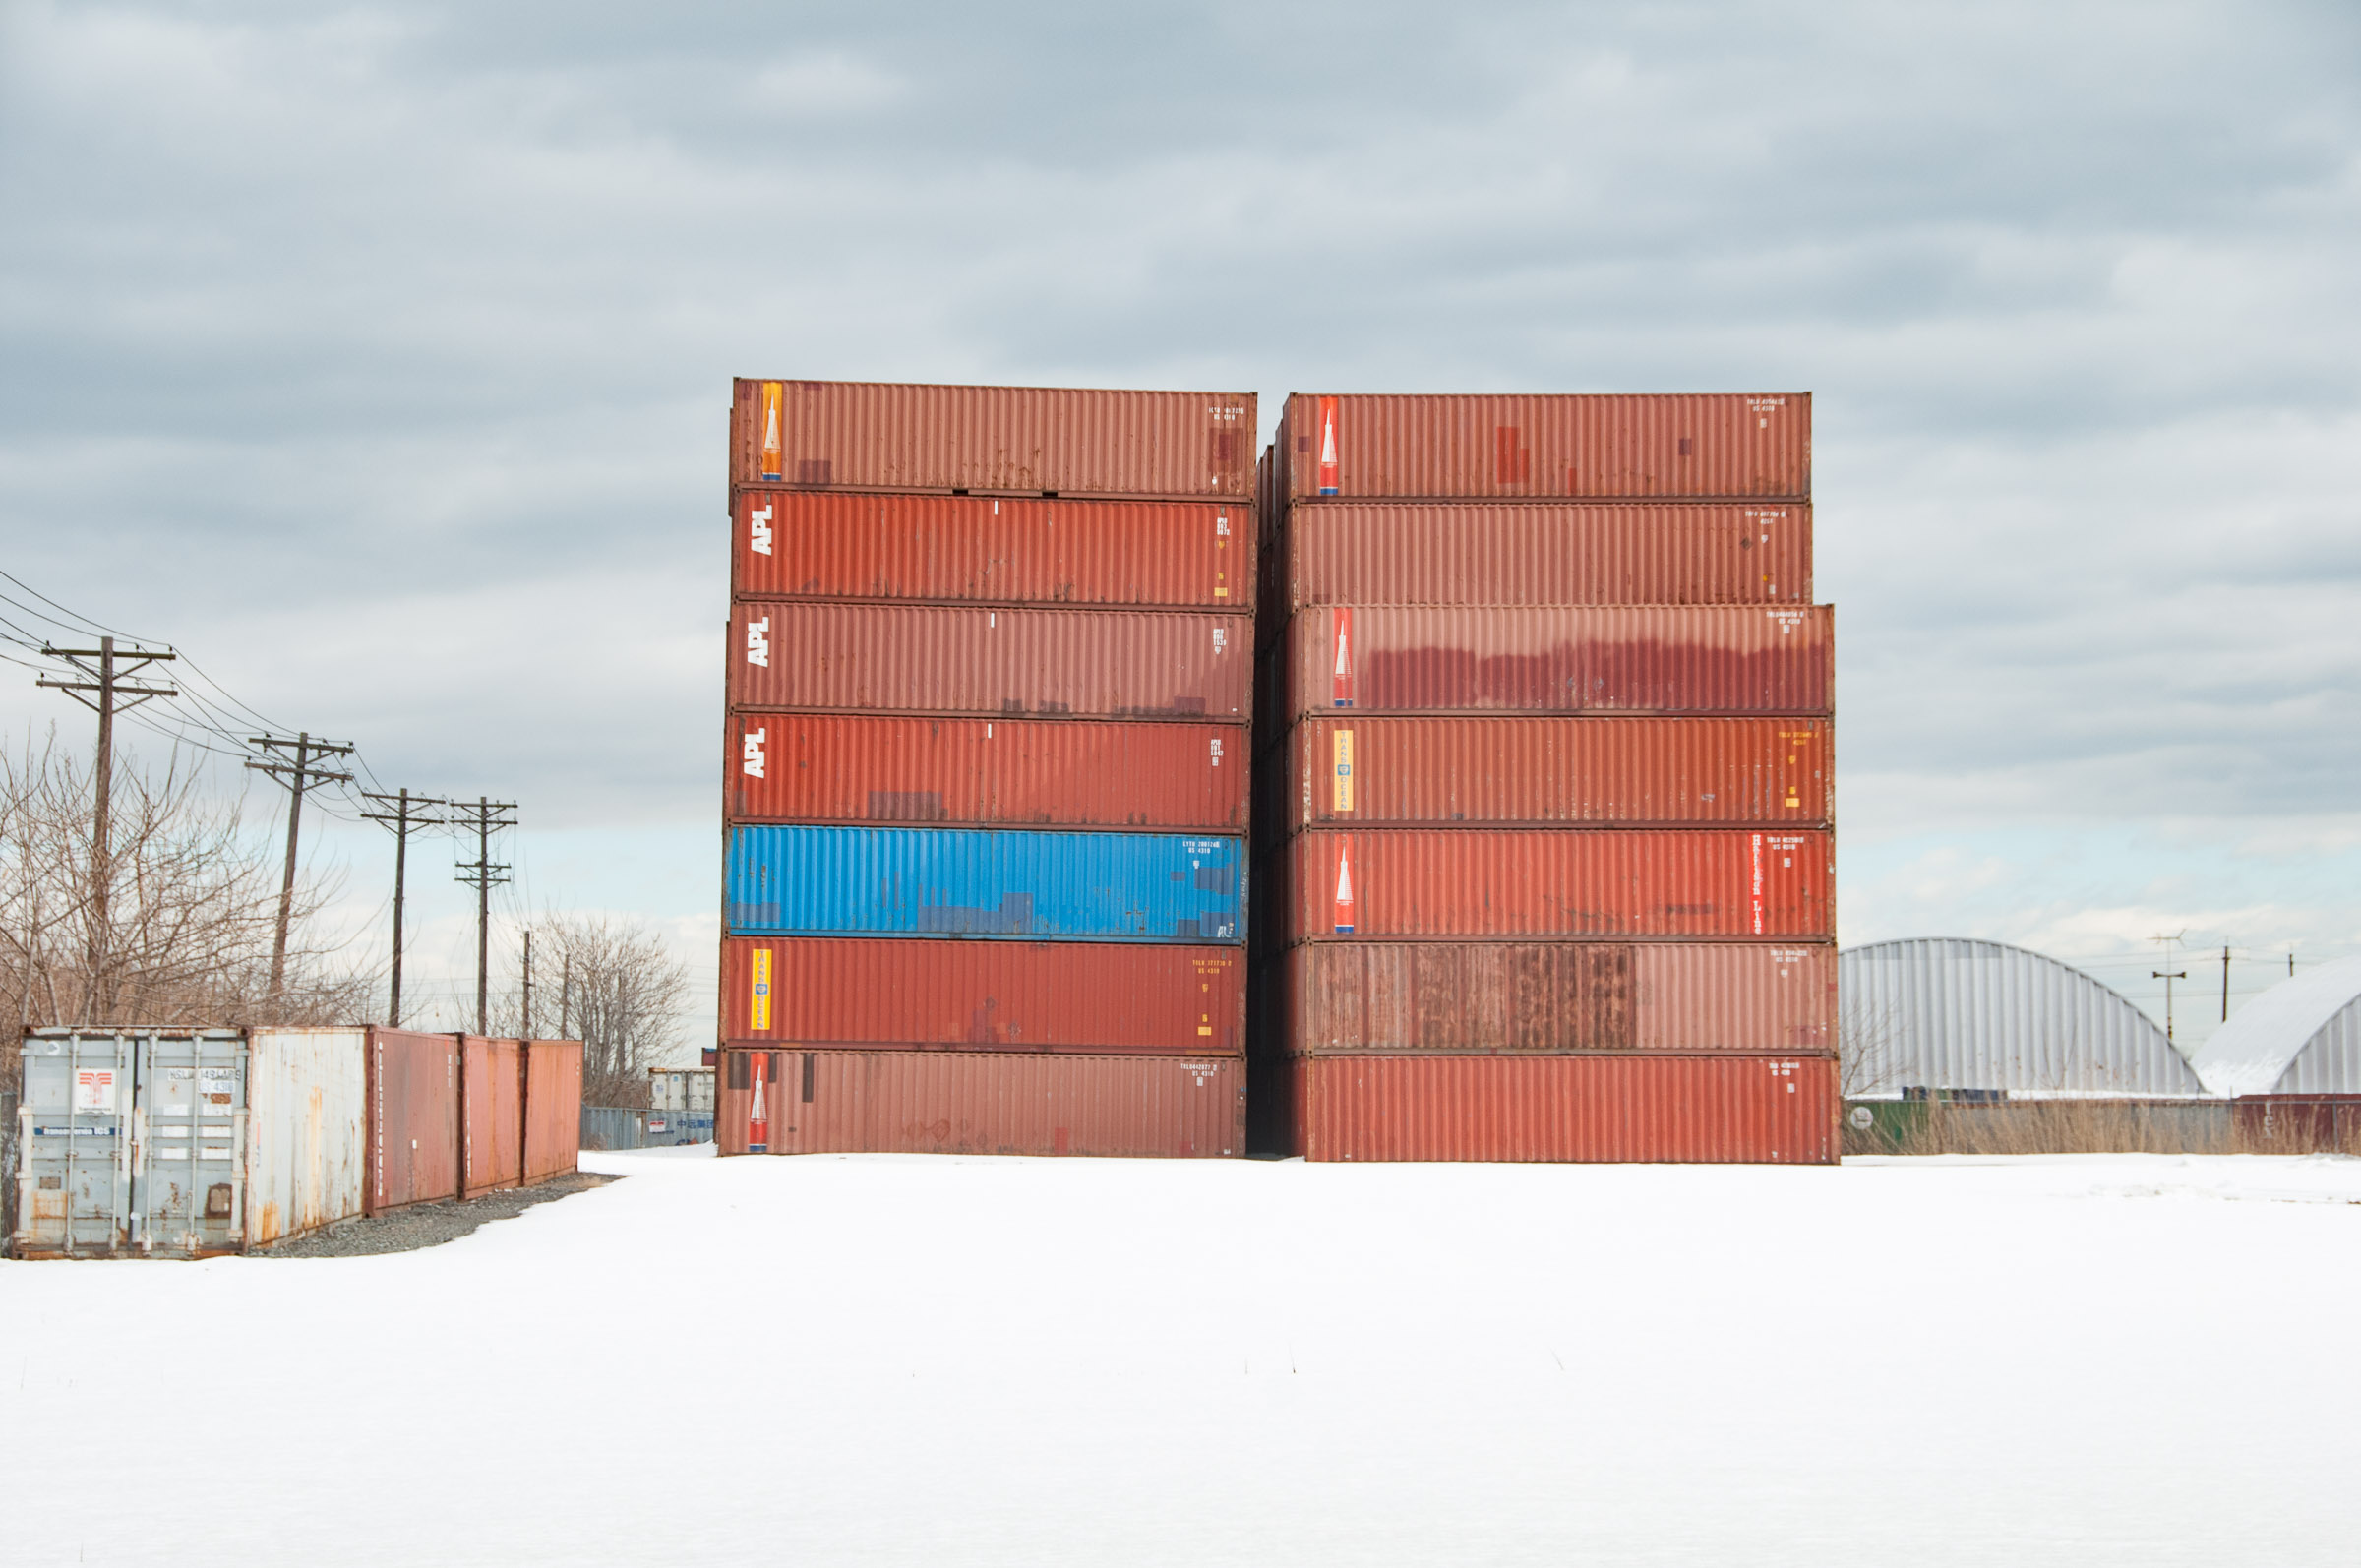 shipping_containers_newark_1331_DSC9102